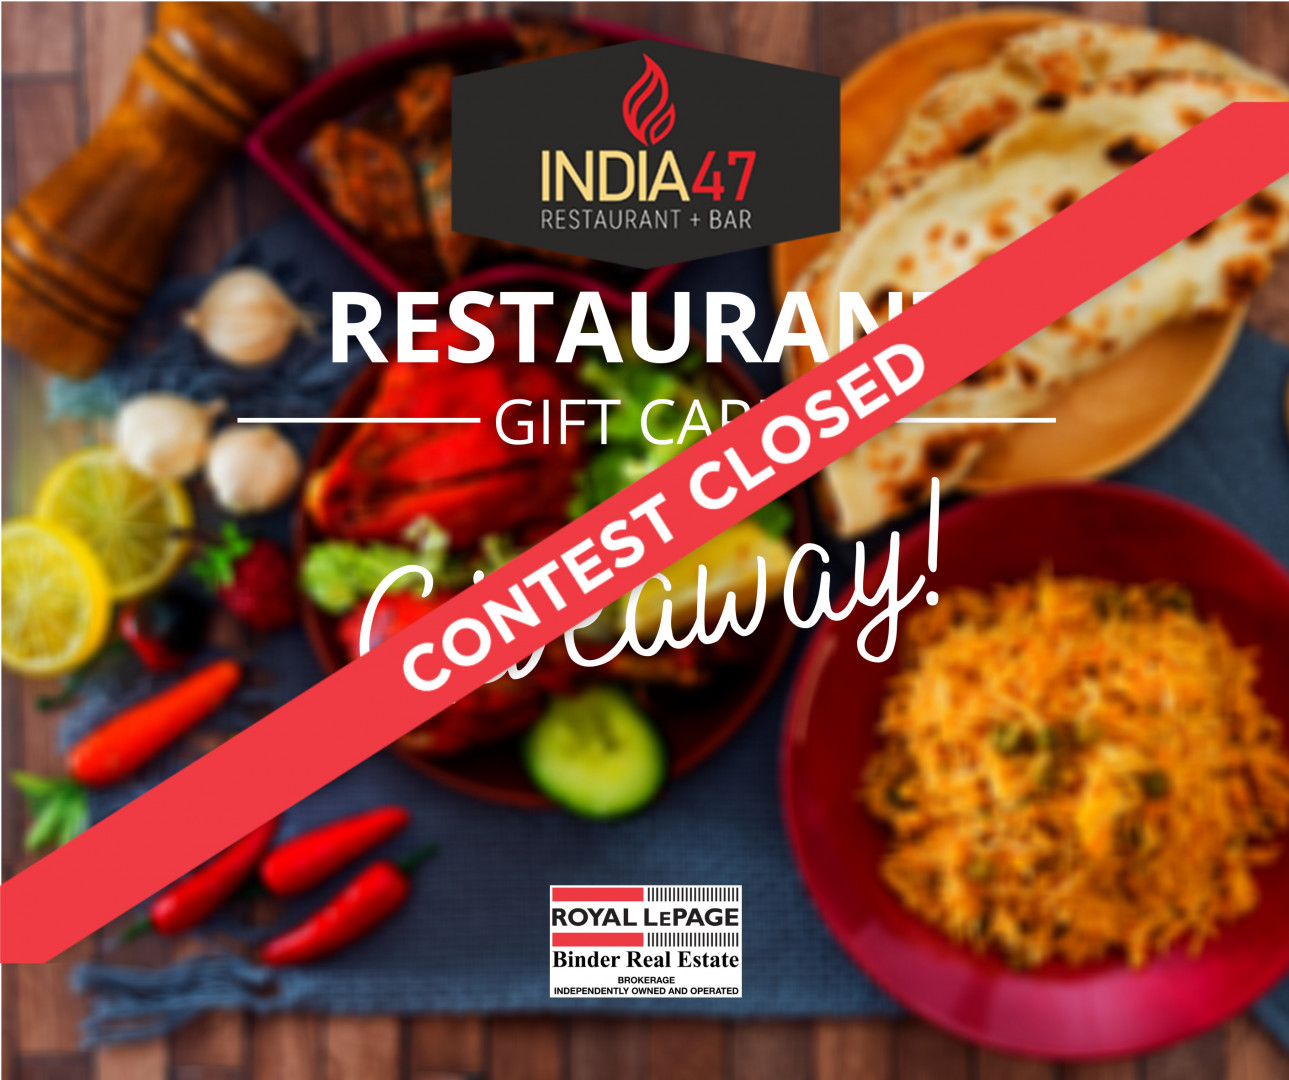 $100 Gift-card Giveaway to  India 47- Contest Rules